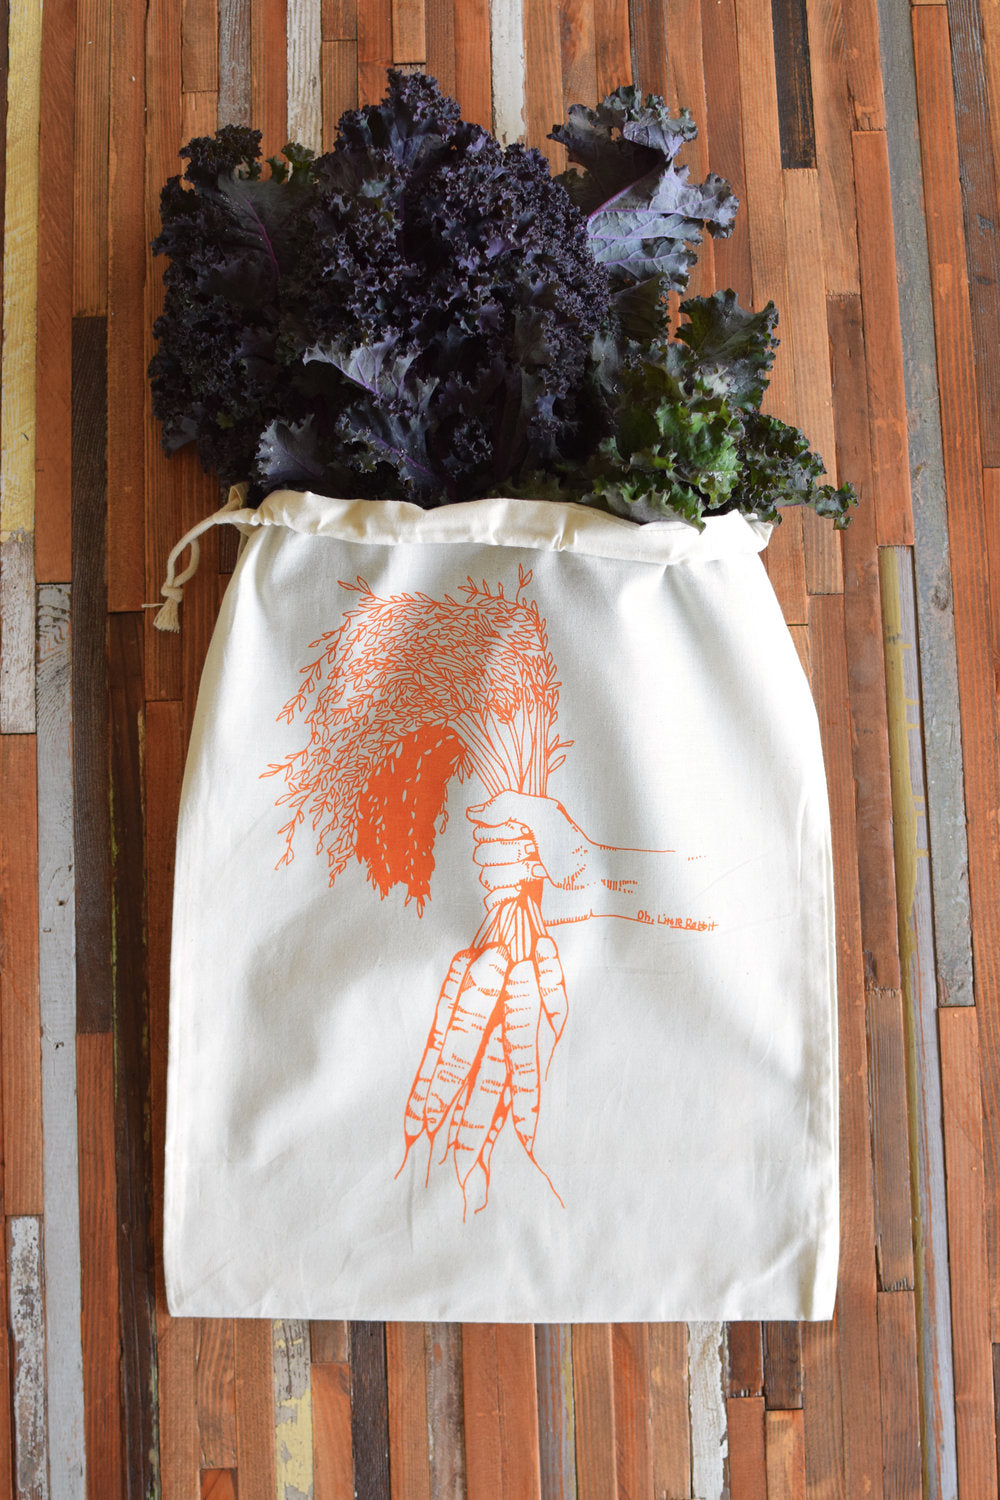 Oh, Little Rabbit - Carrots Produce Bag